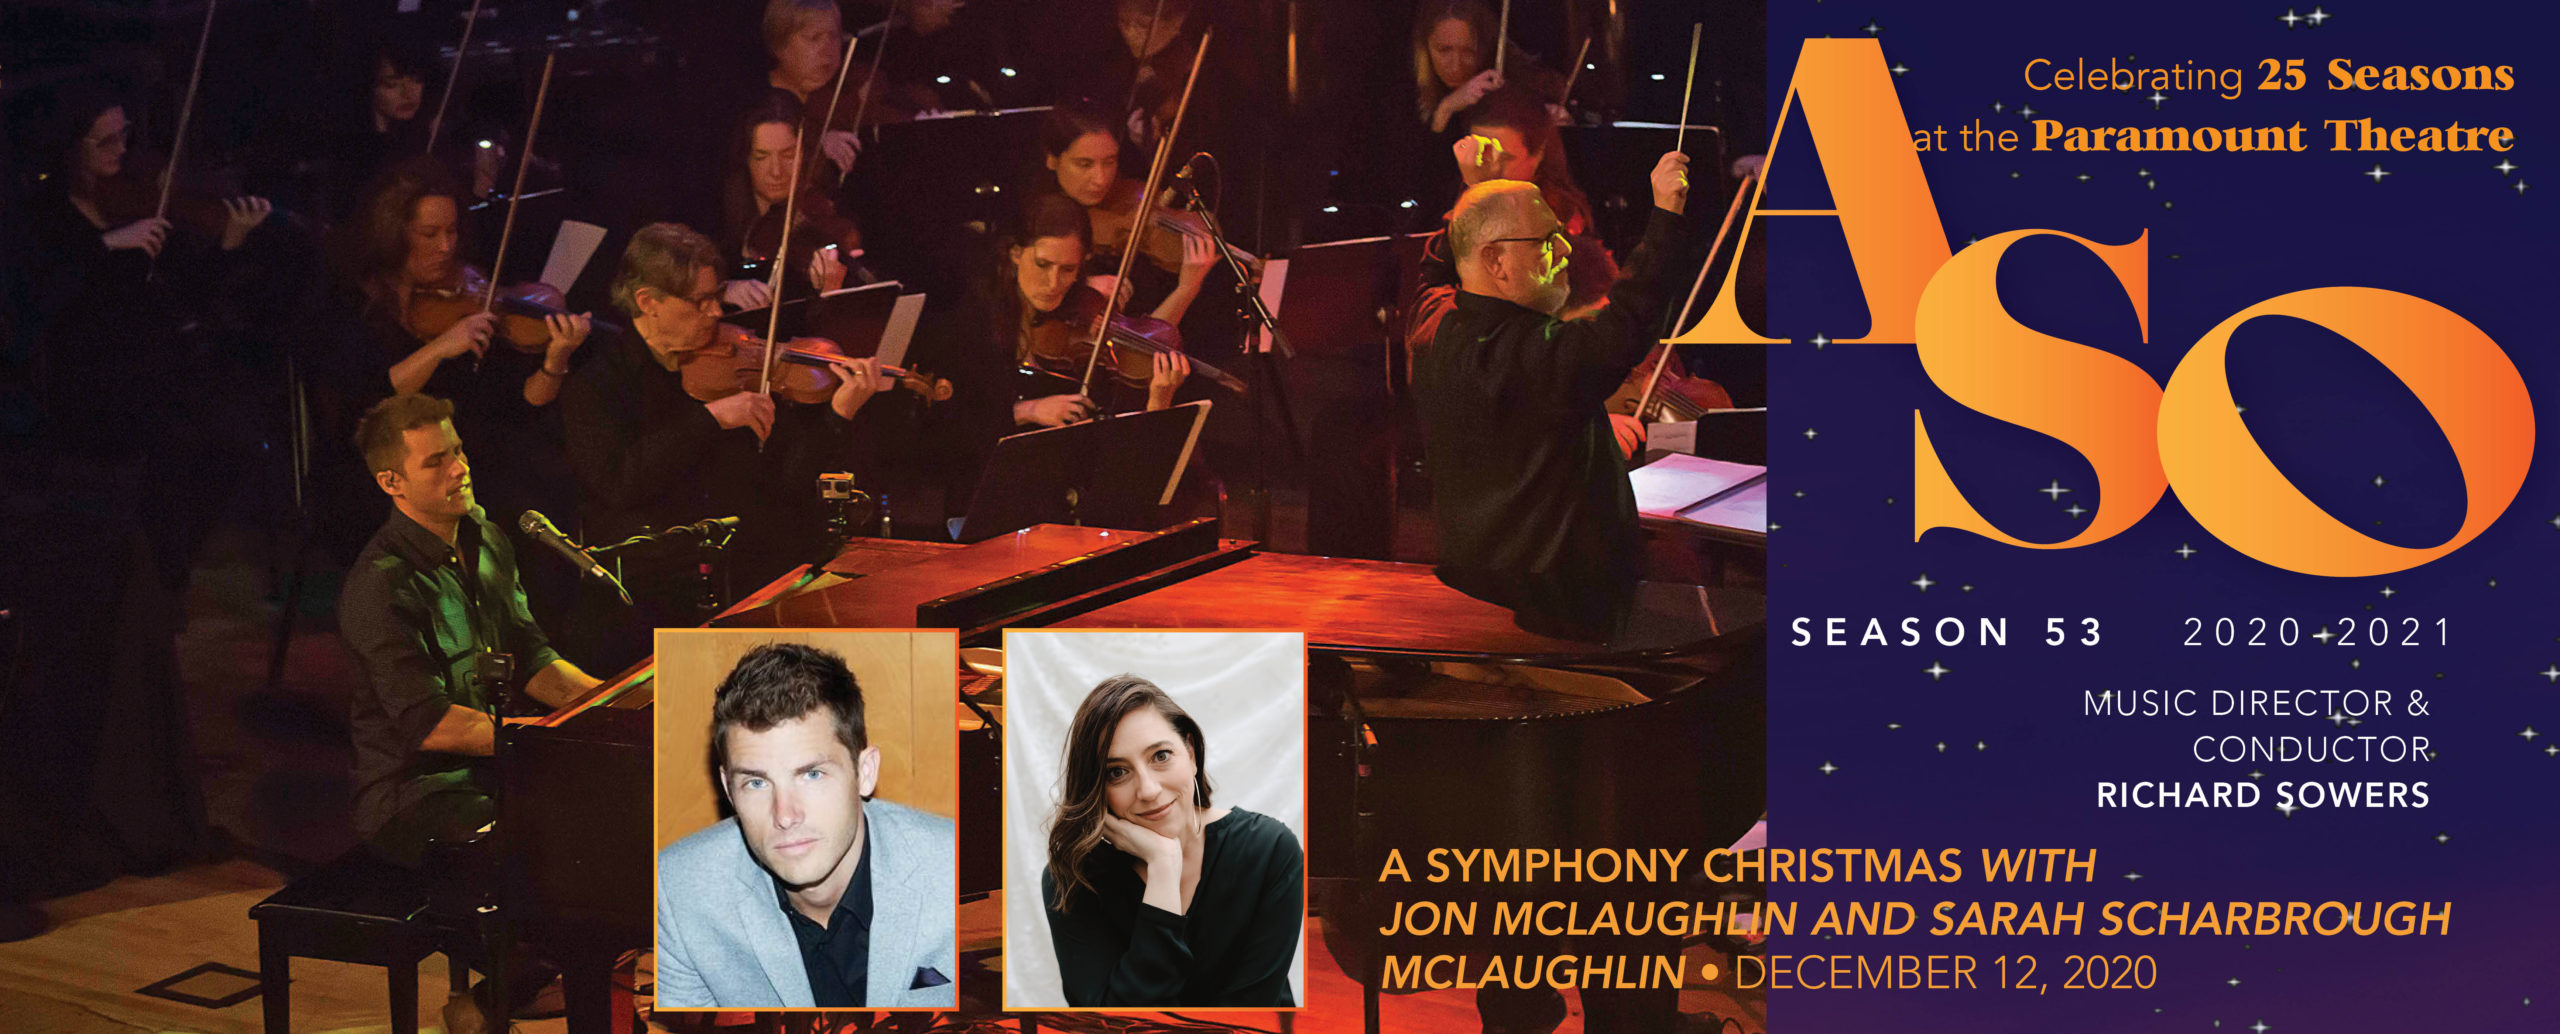 Jon mclaughlin, sarah scharbrough, a symphony christmas, aso